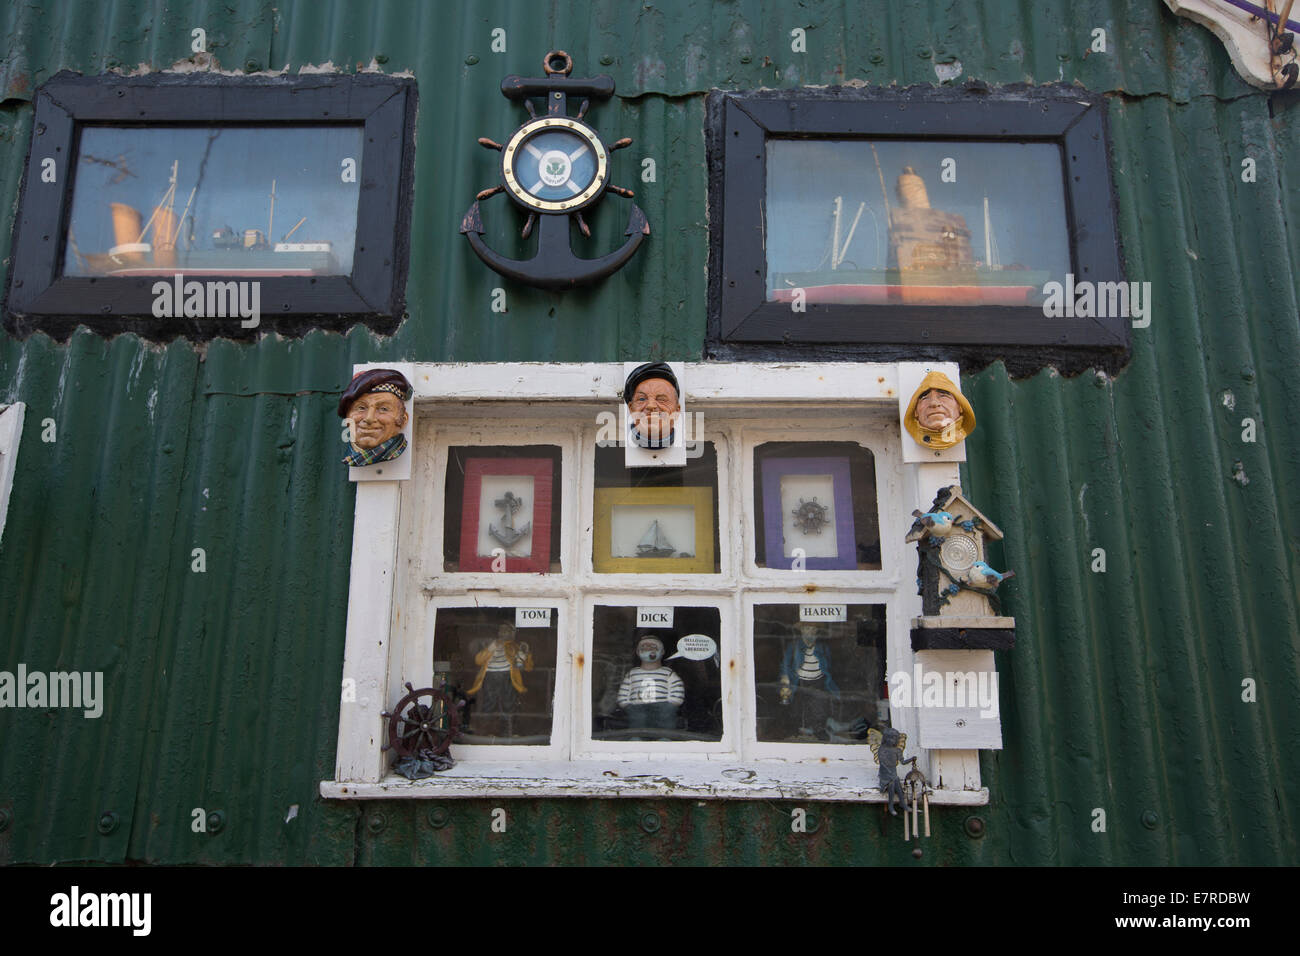 A decorated house wall in the historic Footdee area of Aberdeen, Scotland. - Stock Image